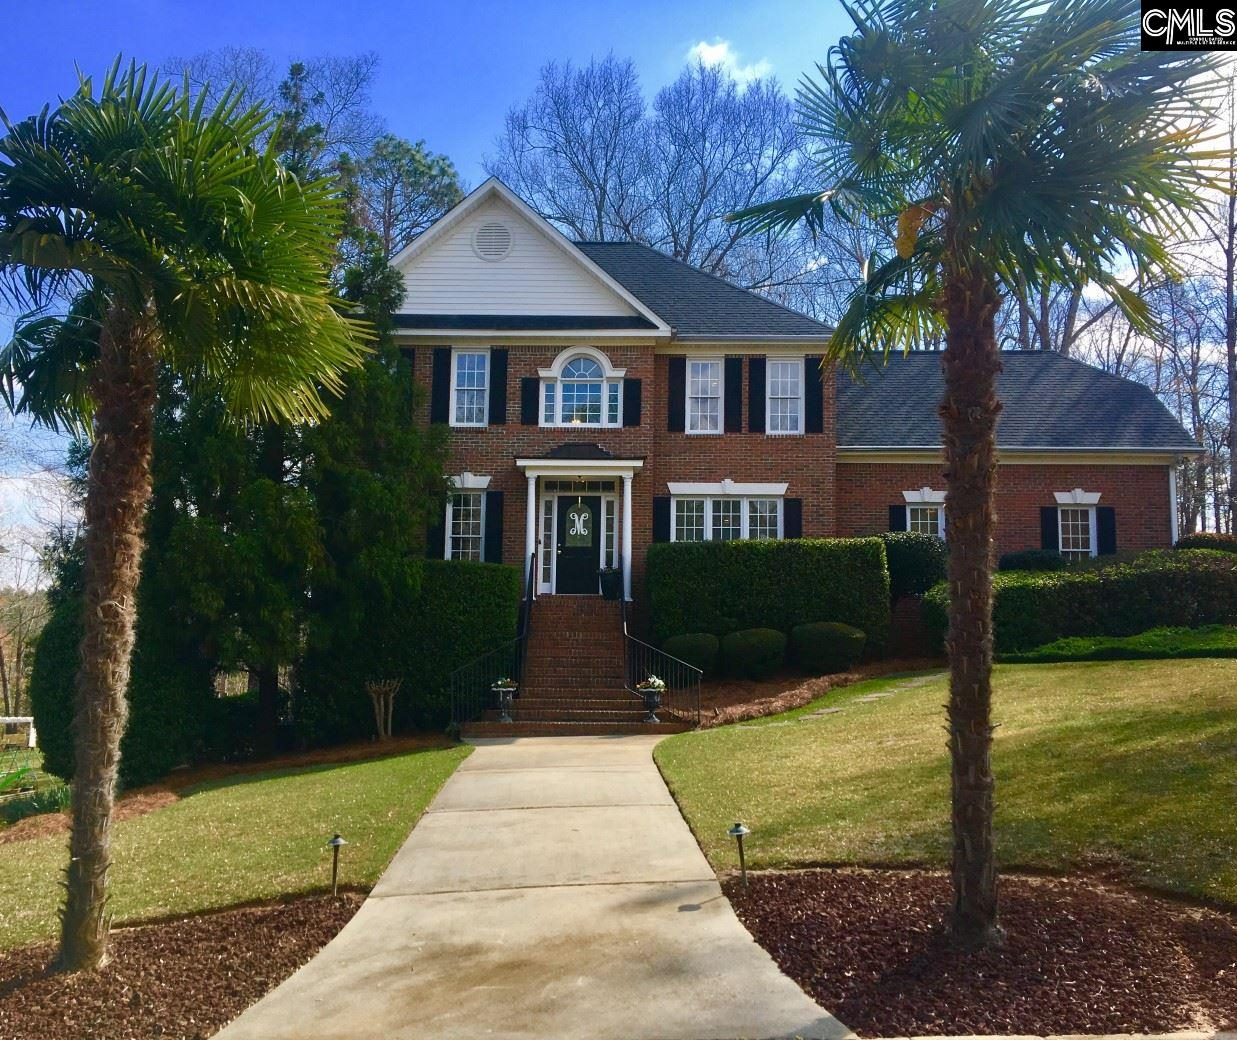 149 Misty Oaks Lexington, SC 29072